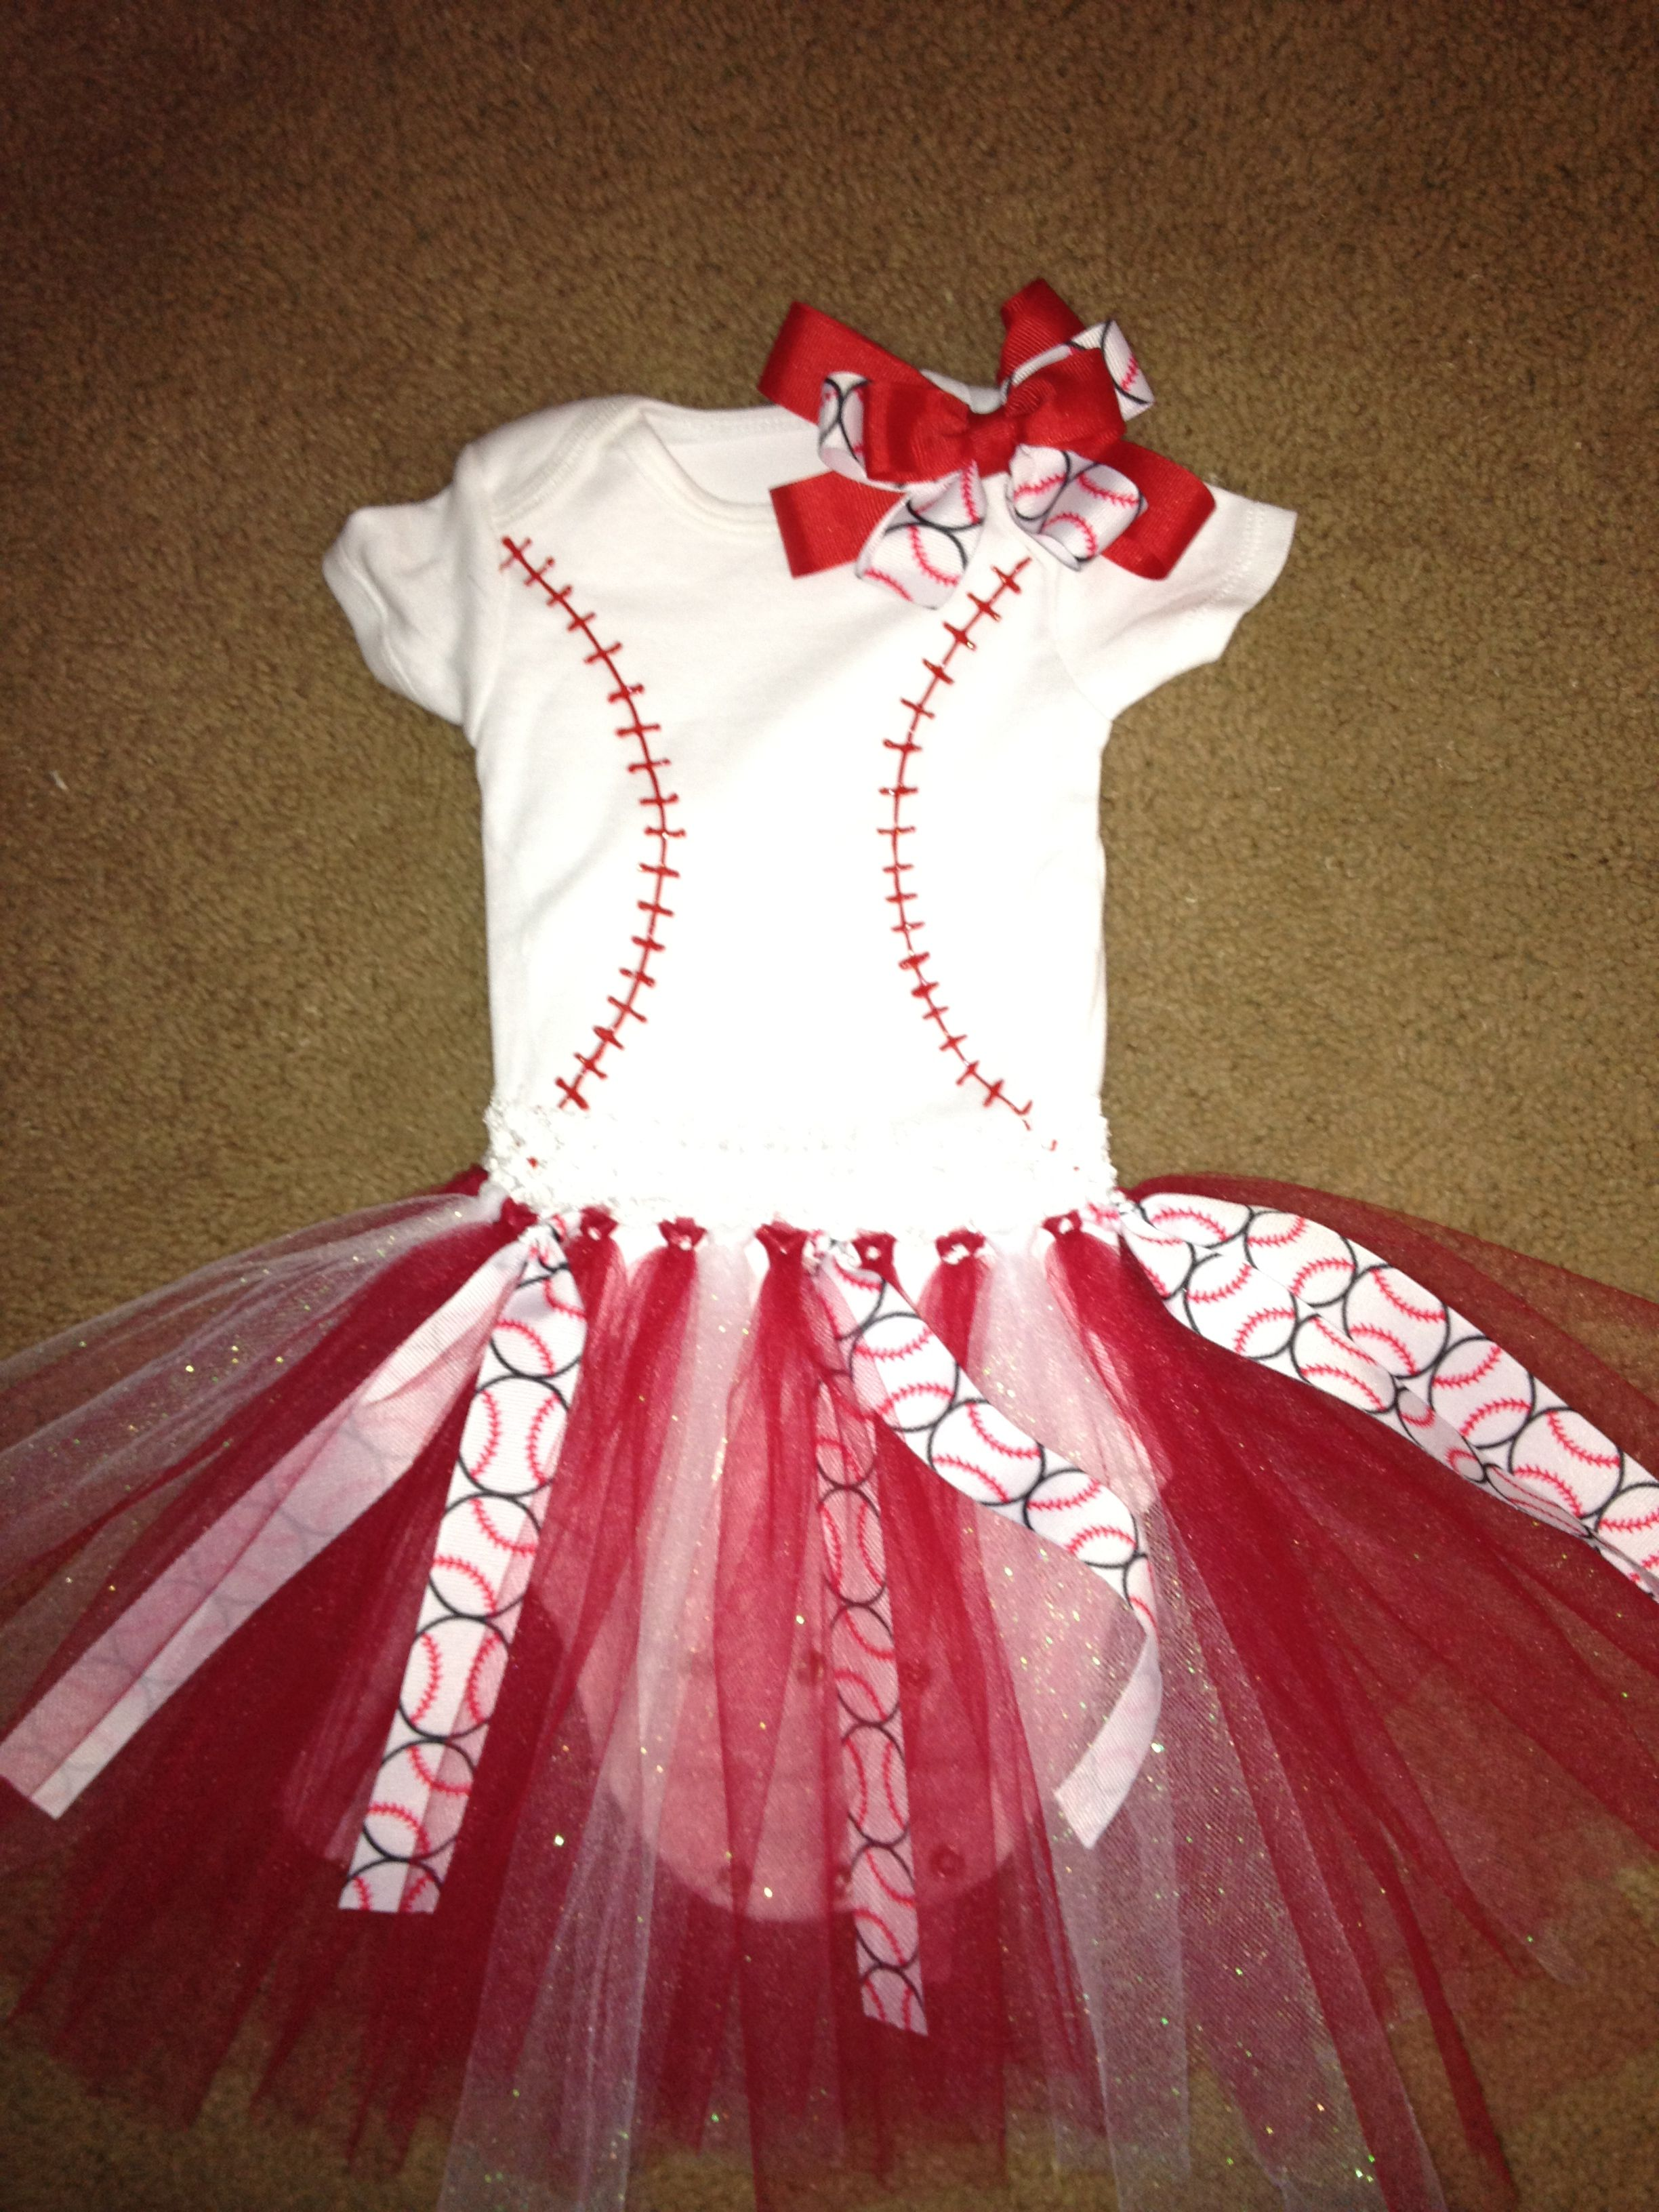 Baby girl's baseball outfit! This afternoon's craft ...